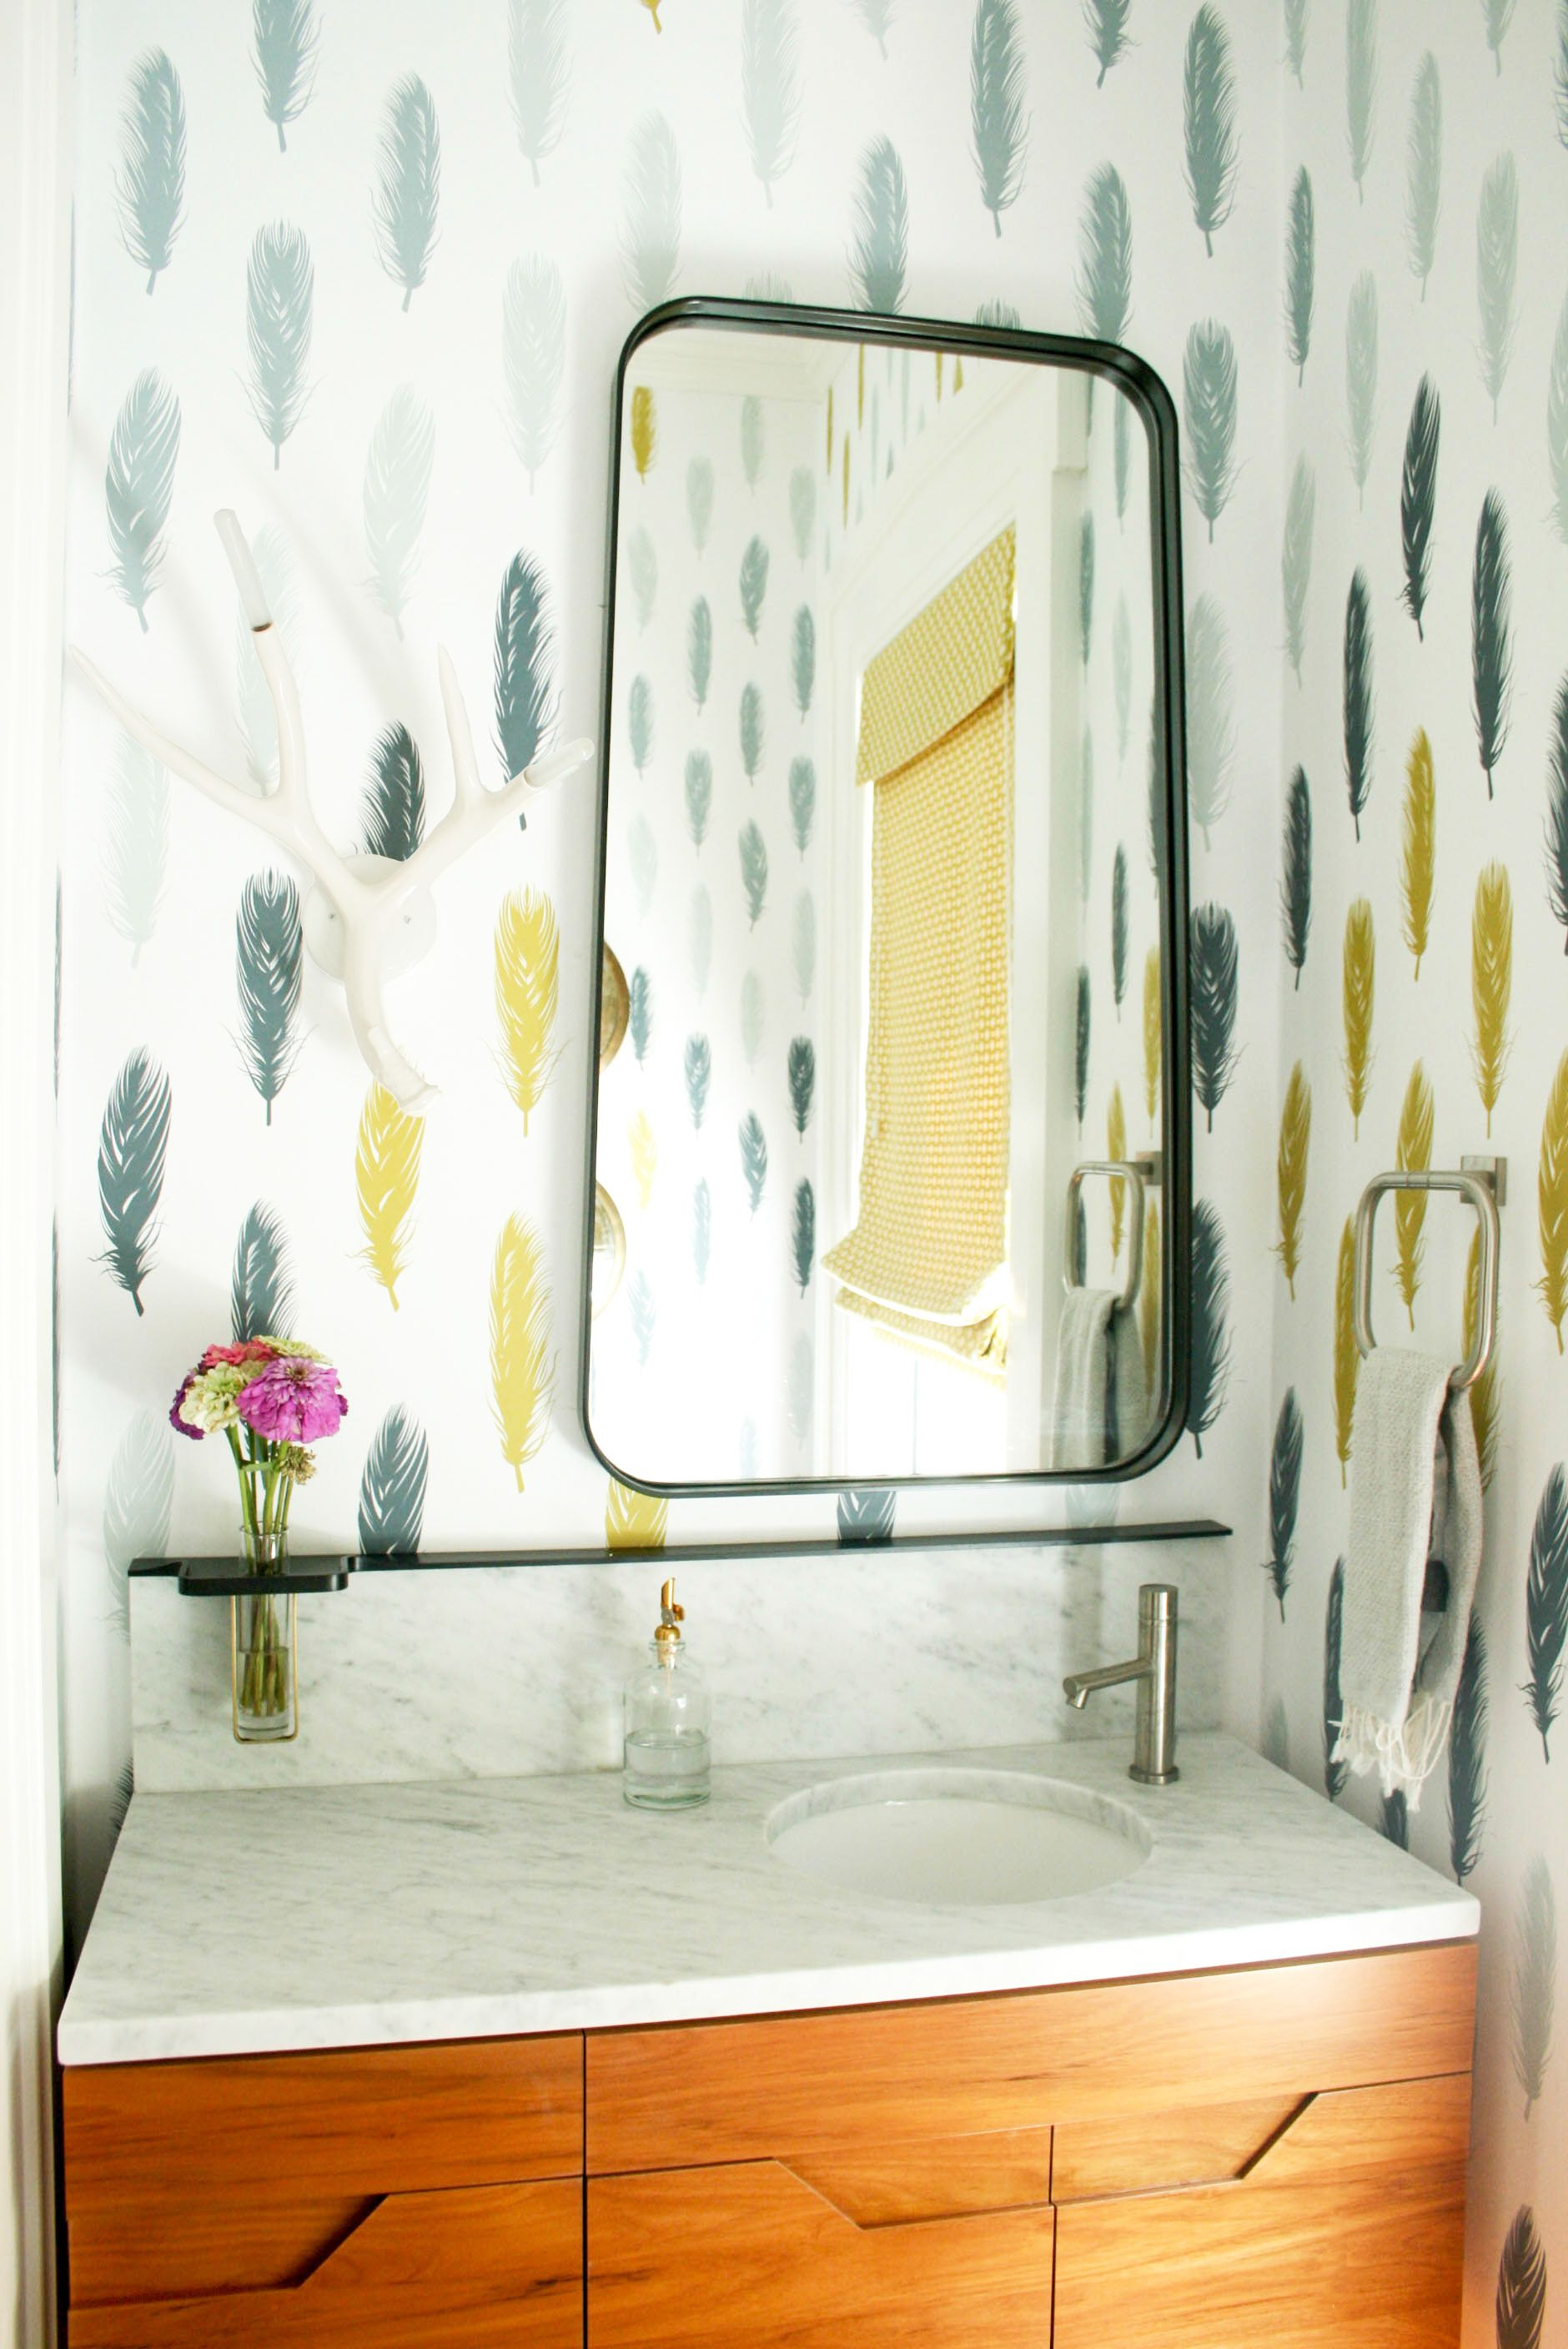 Custom Feather Wallpaper Contemporary Bathroom Design Powder Room